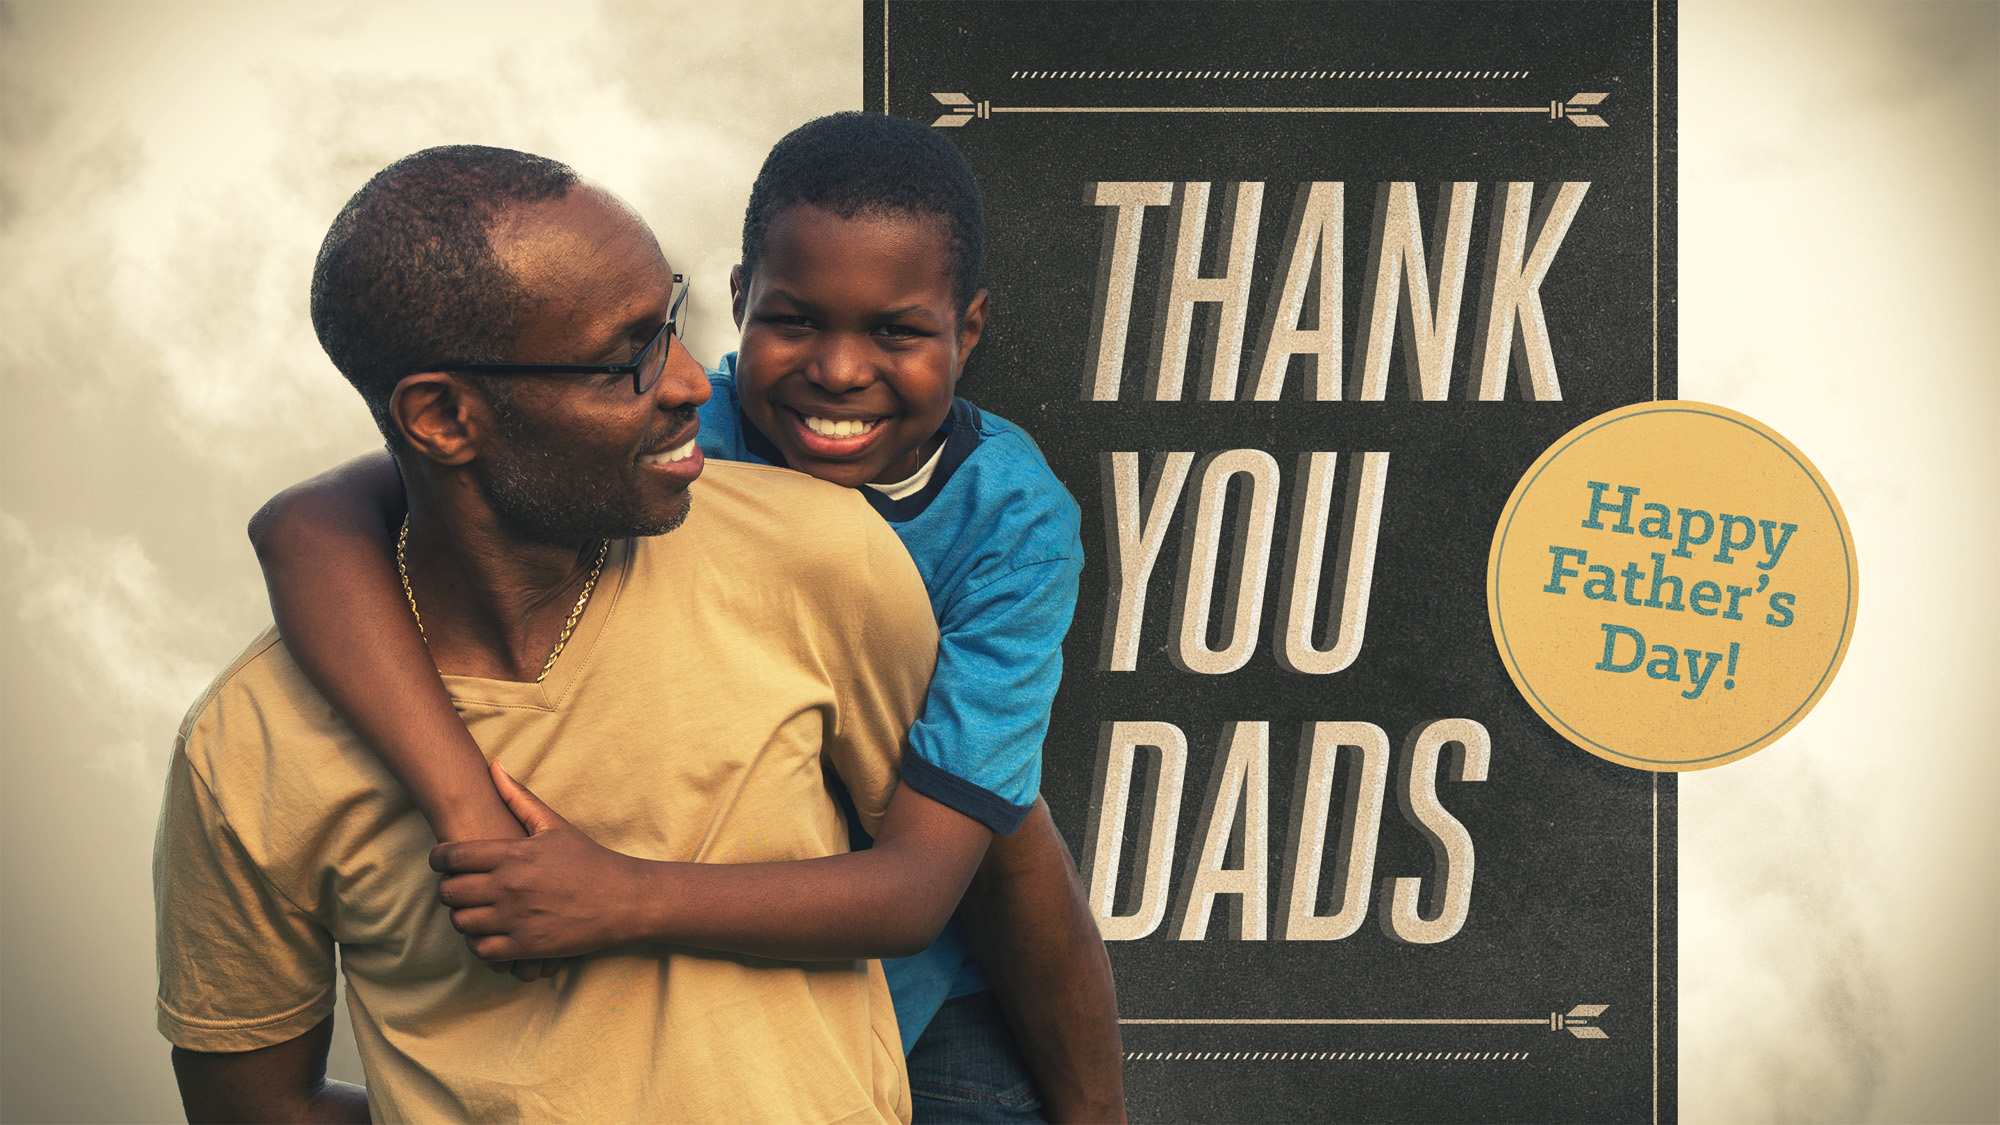 Thank You Dads!